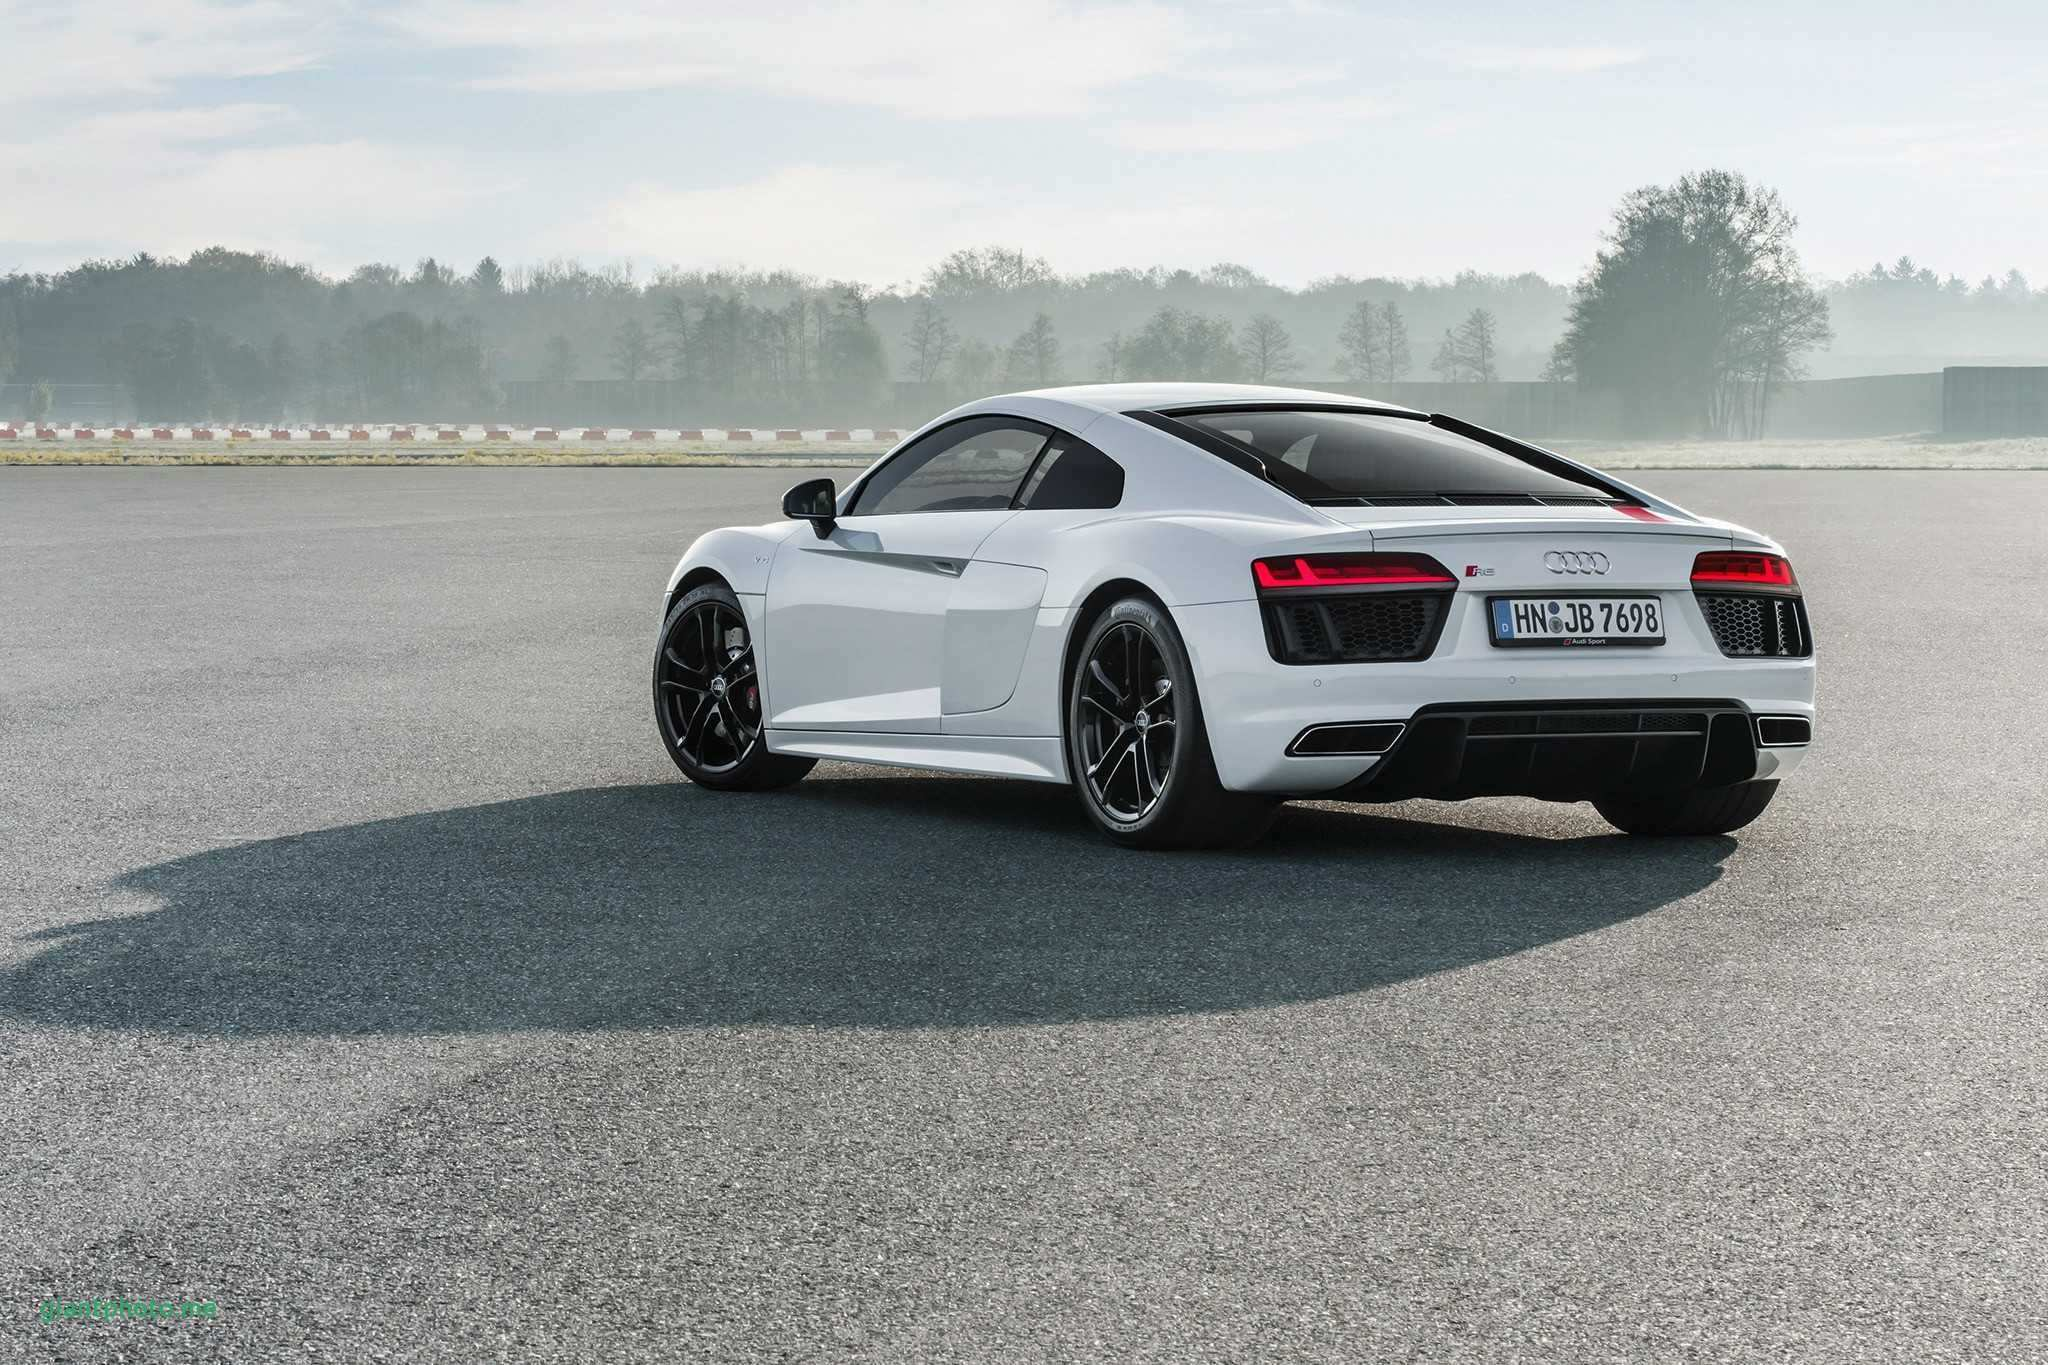 80 Concept of 2020 Audi R8 LMXs Price and Review for 2020 Audi R8 LMXs